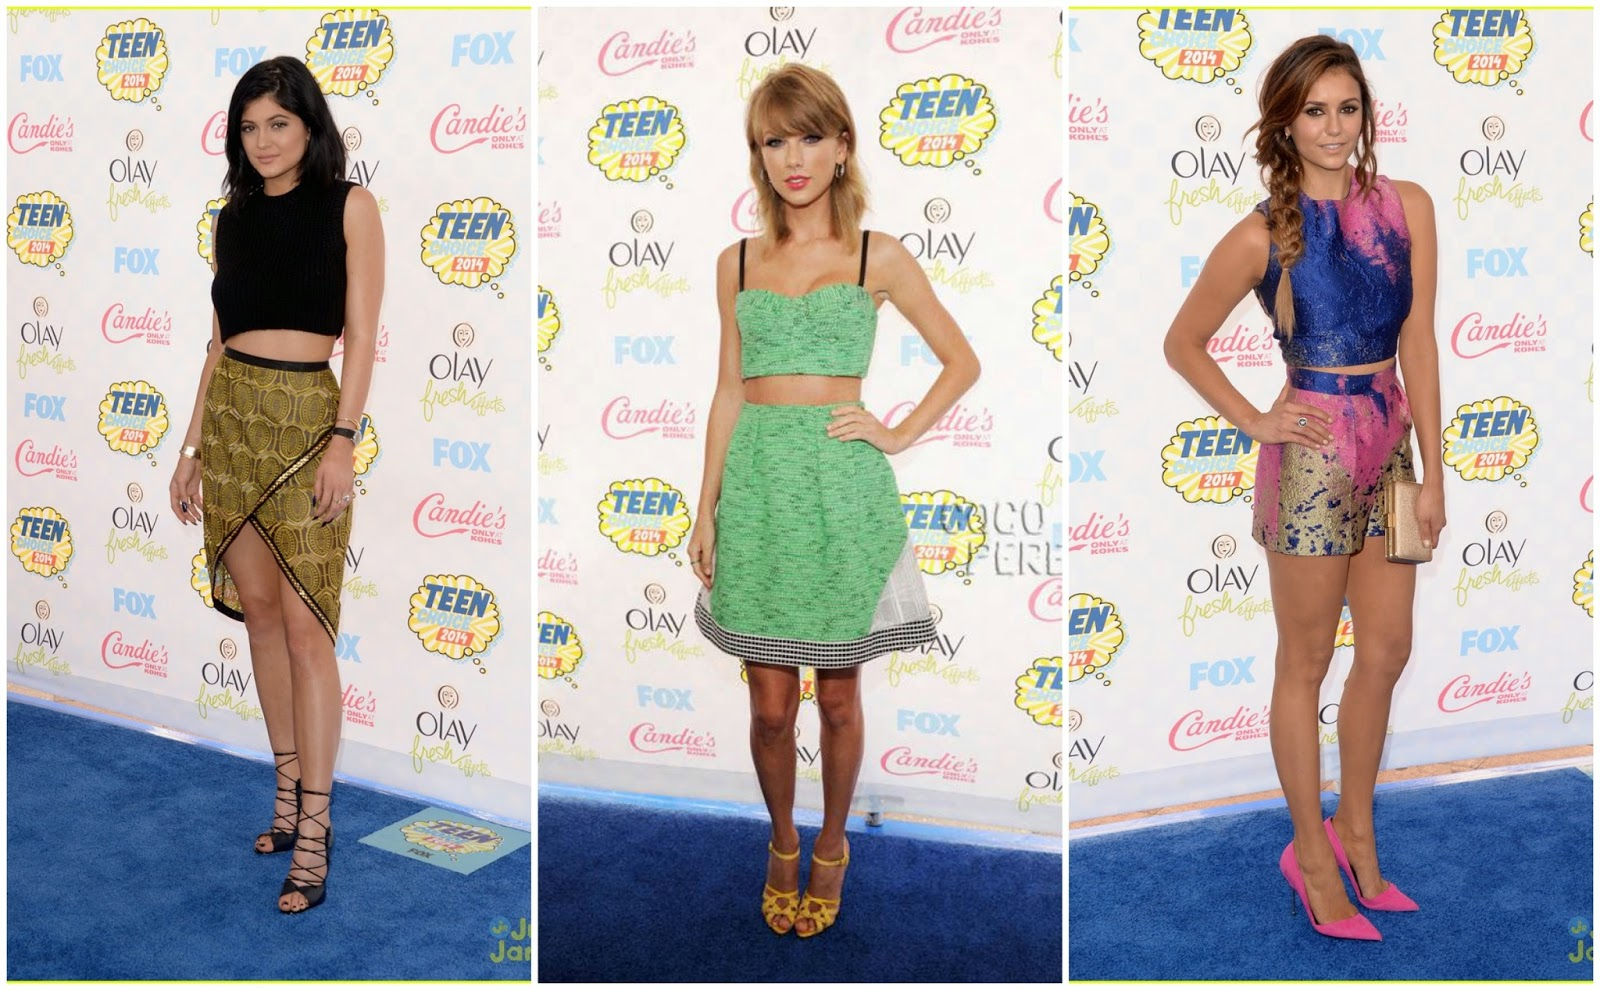 Best outfits at Teen Choice Awards 2014 Ceremony